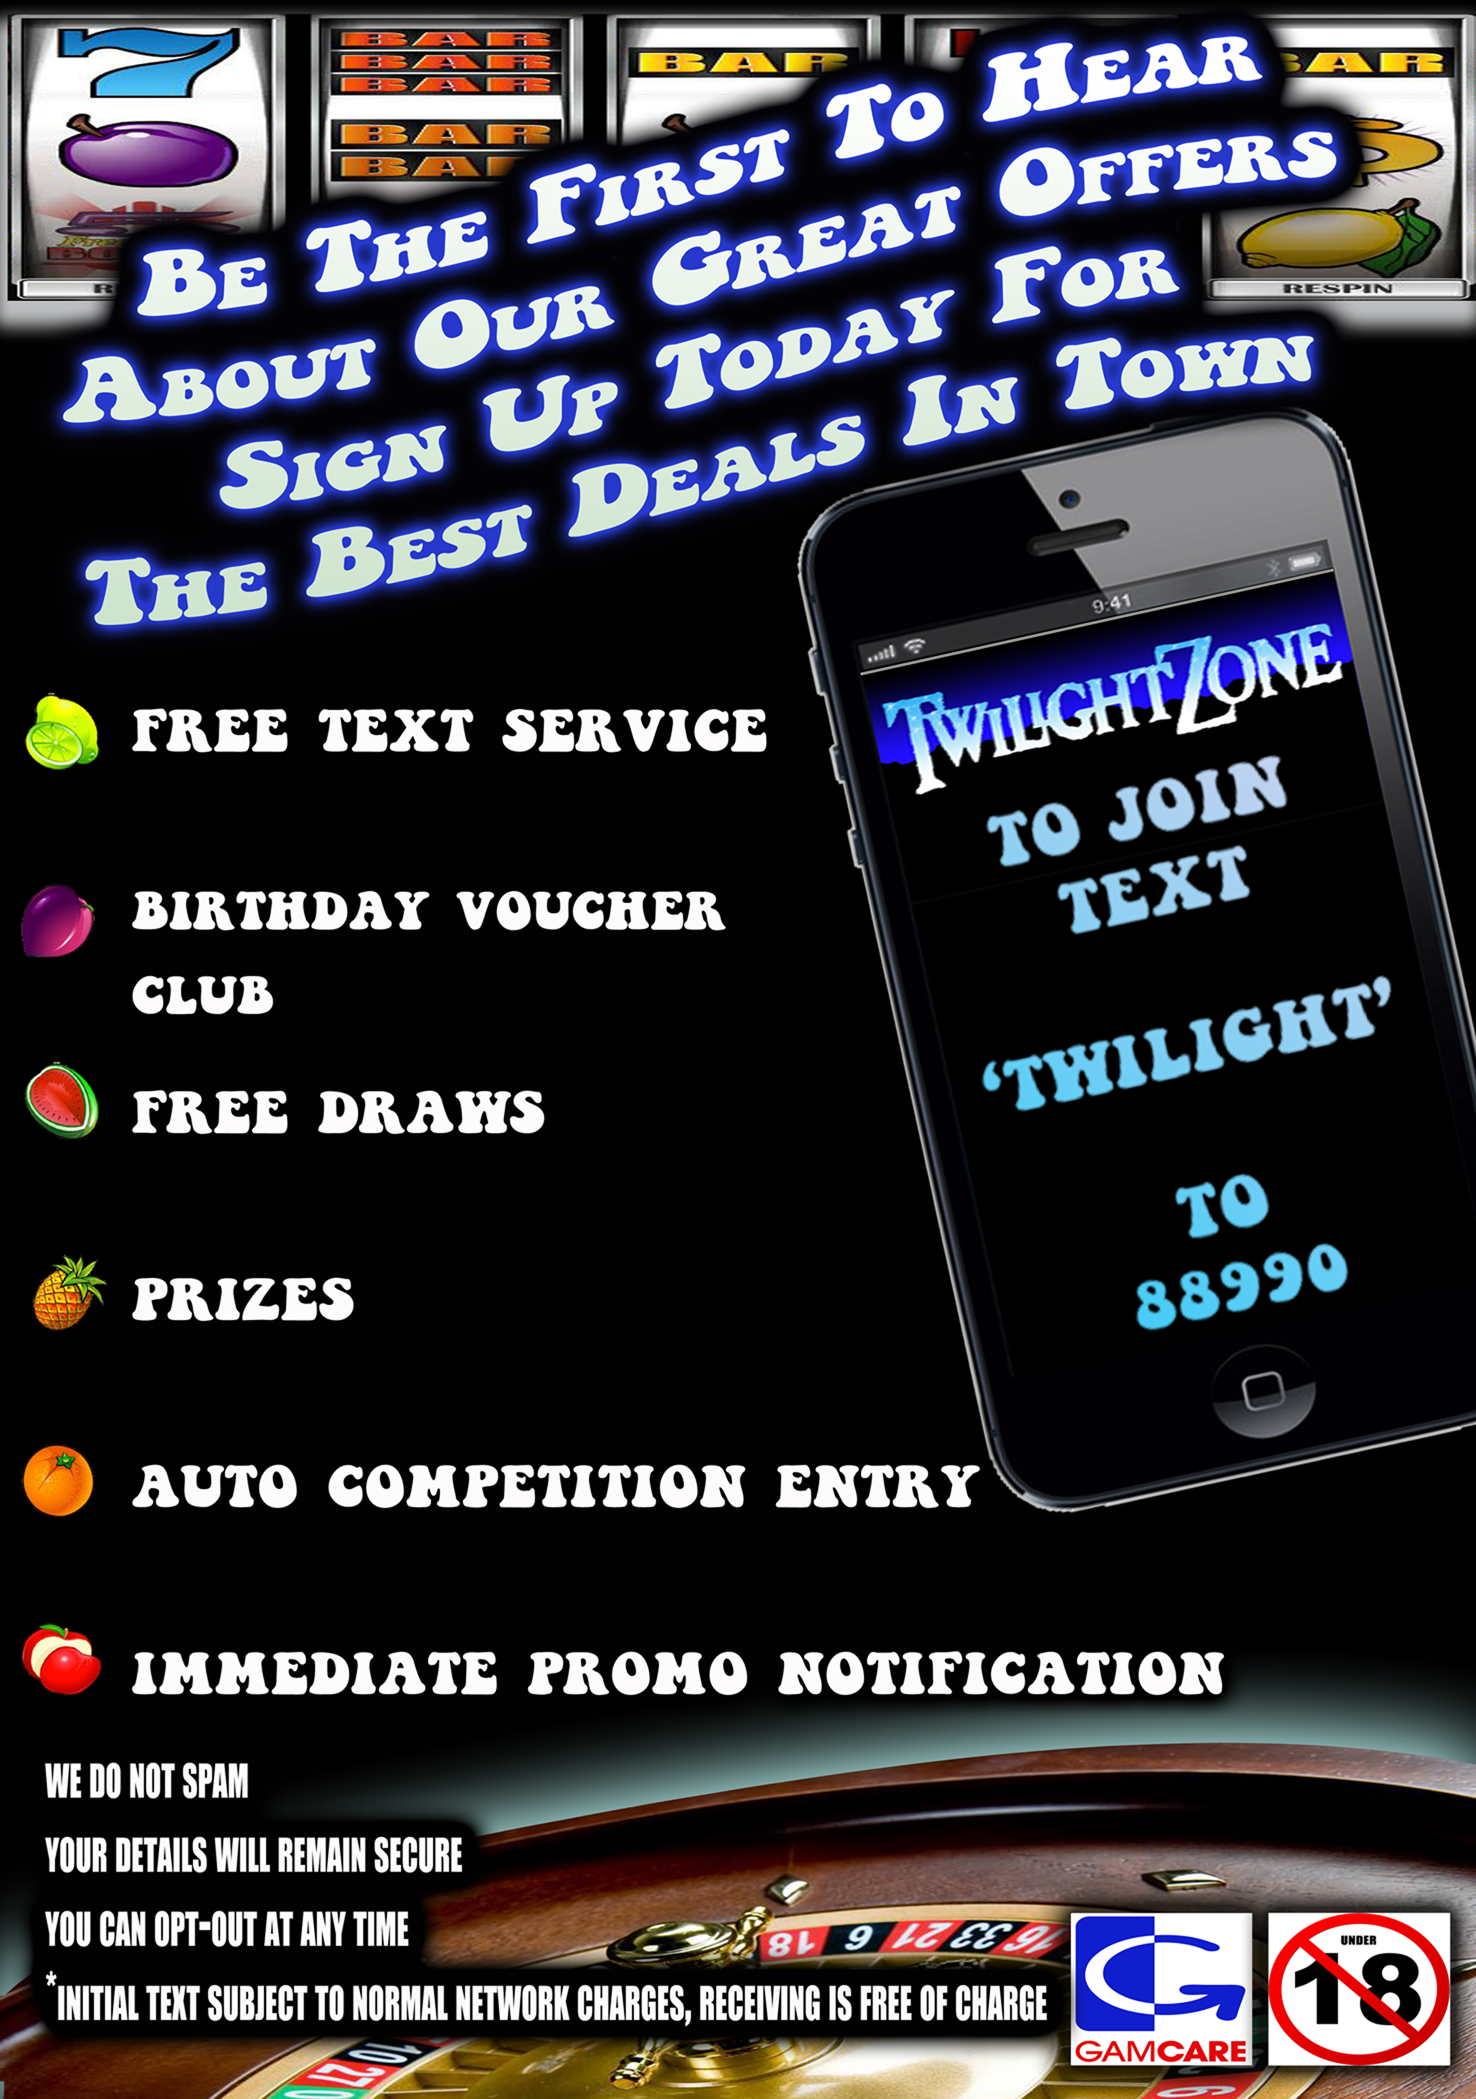 window-poster---texter-service---twilight-zone.png